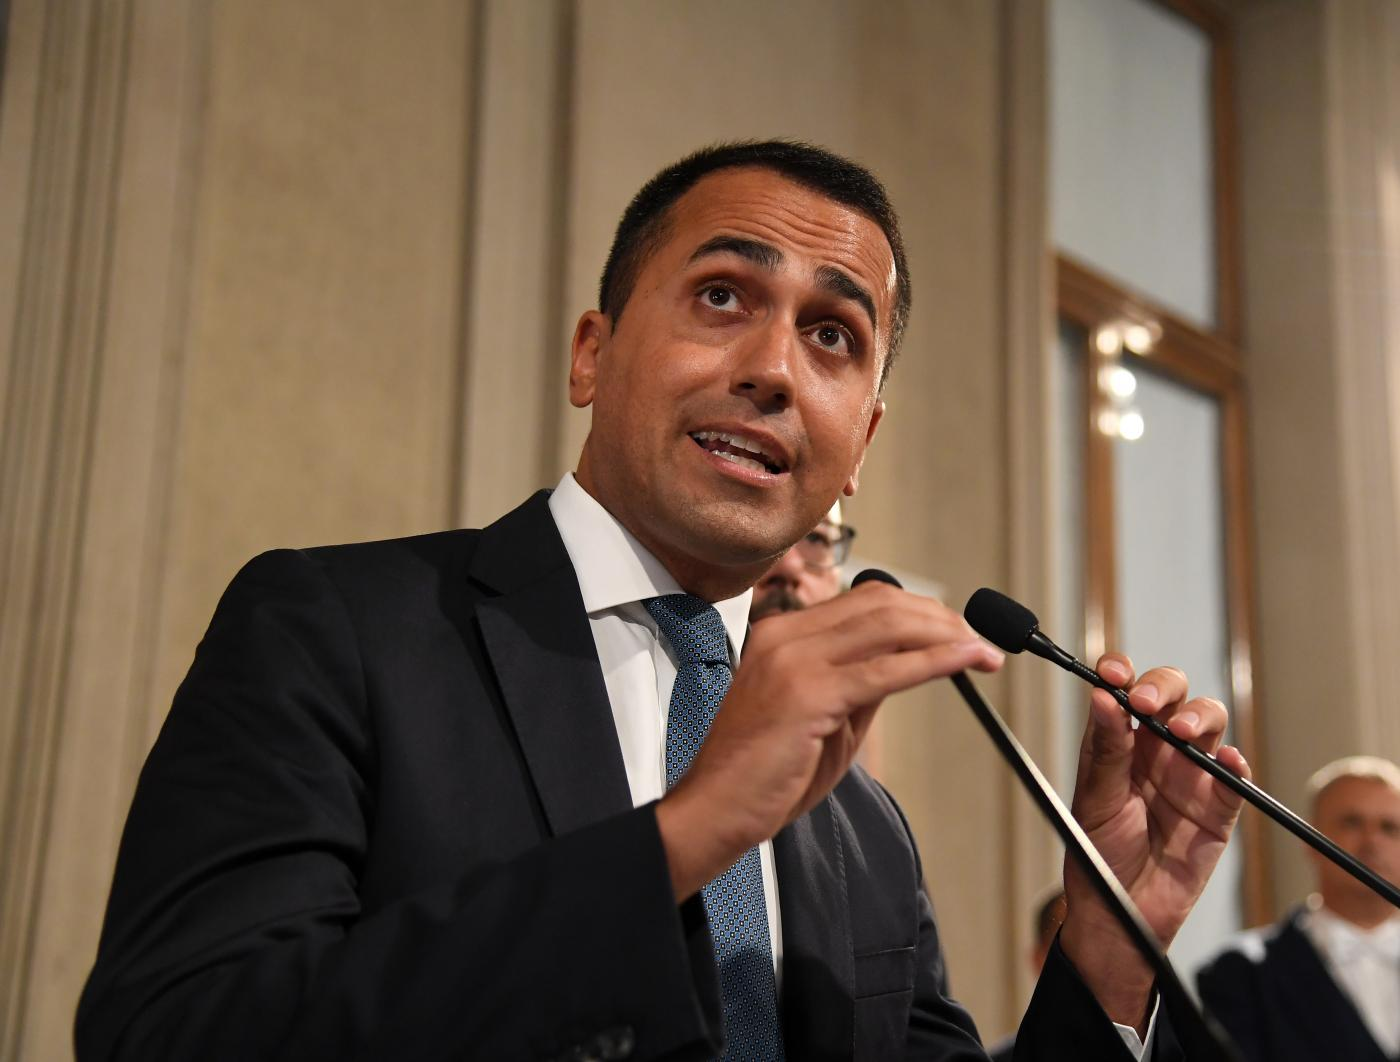 ROME, Aug. 28, 2019 (Xinhua) -- Italy's Five Star Movement leader Luigi Di Maio speaks at the Palazzo del Quirinale in Rome, Italy, on Aug. 28, 2019. Italian president Sergio Mattarella will summon outgoing Prime Minister Giuseppe Conte on Thursday in order to ask him to try to form a new coalition government. (Photo by Alberto Lingria/Xinhua/IANS) by .